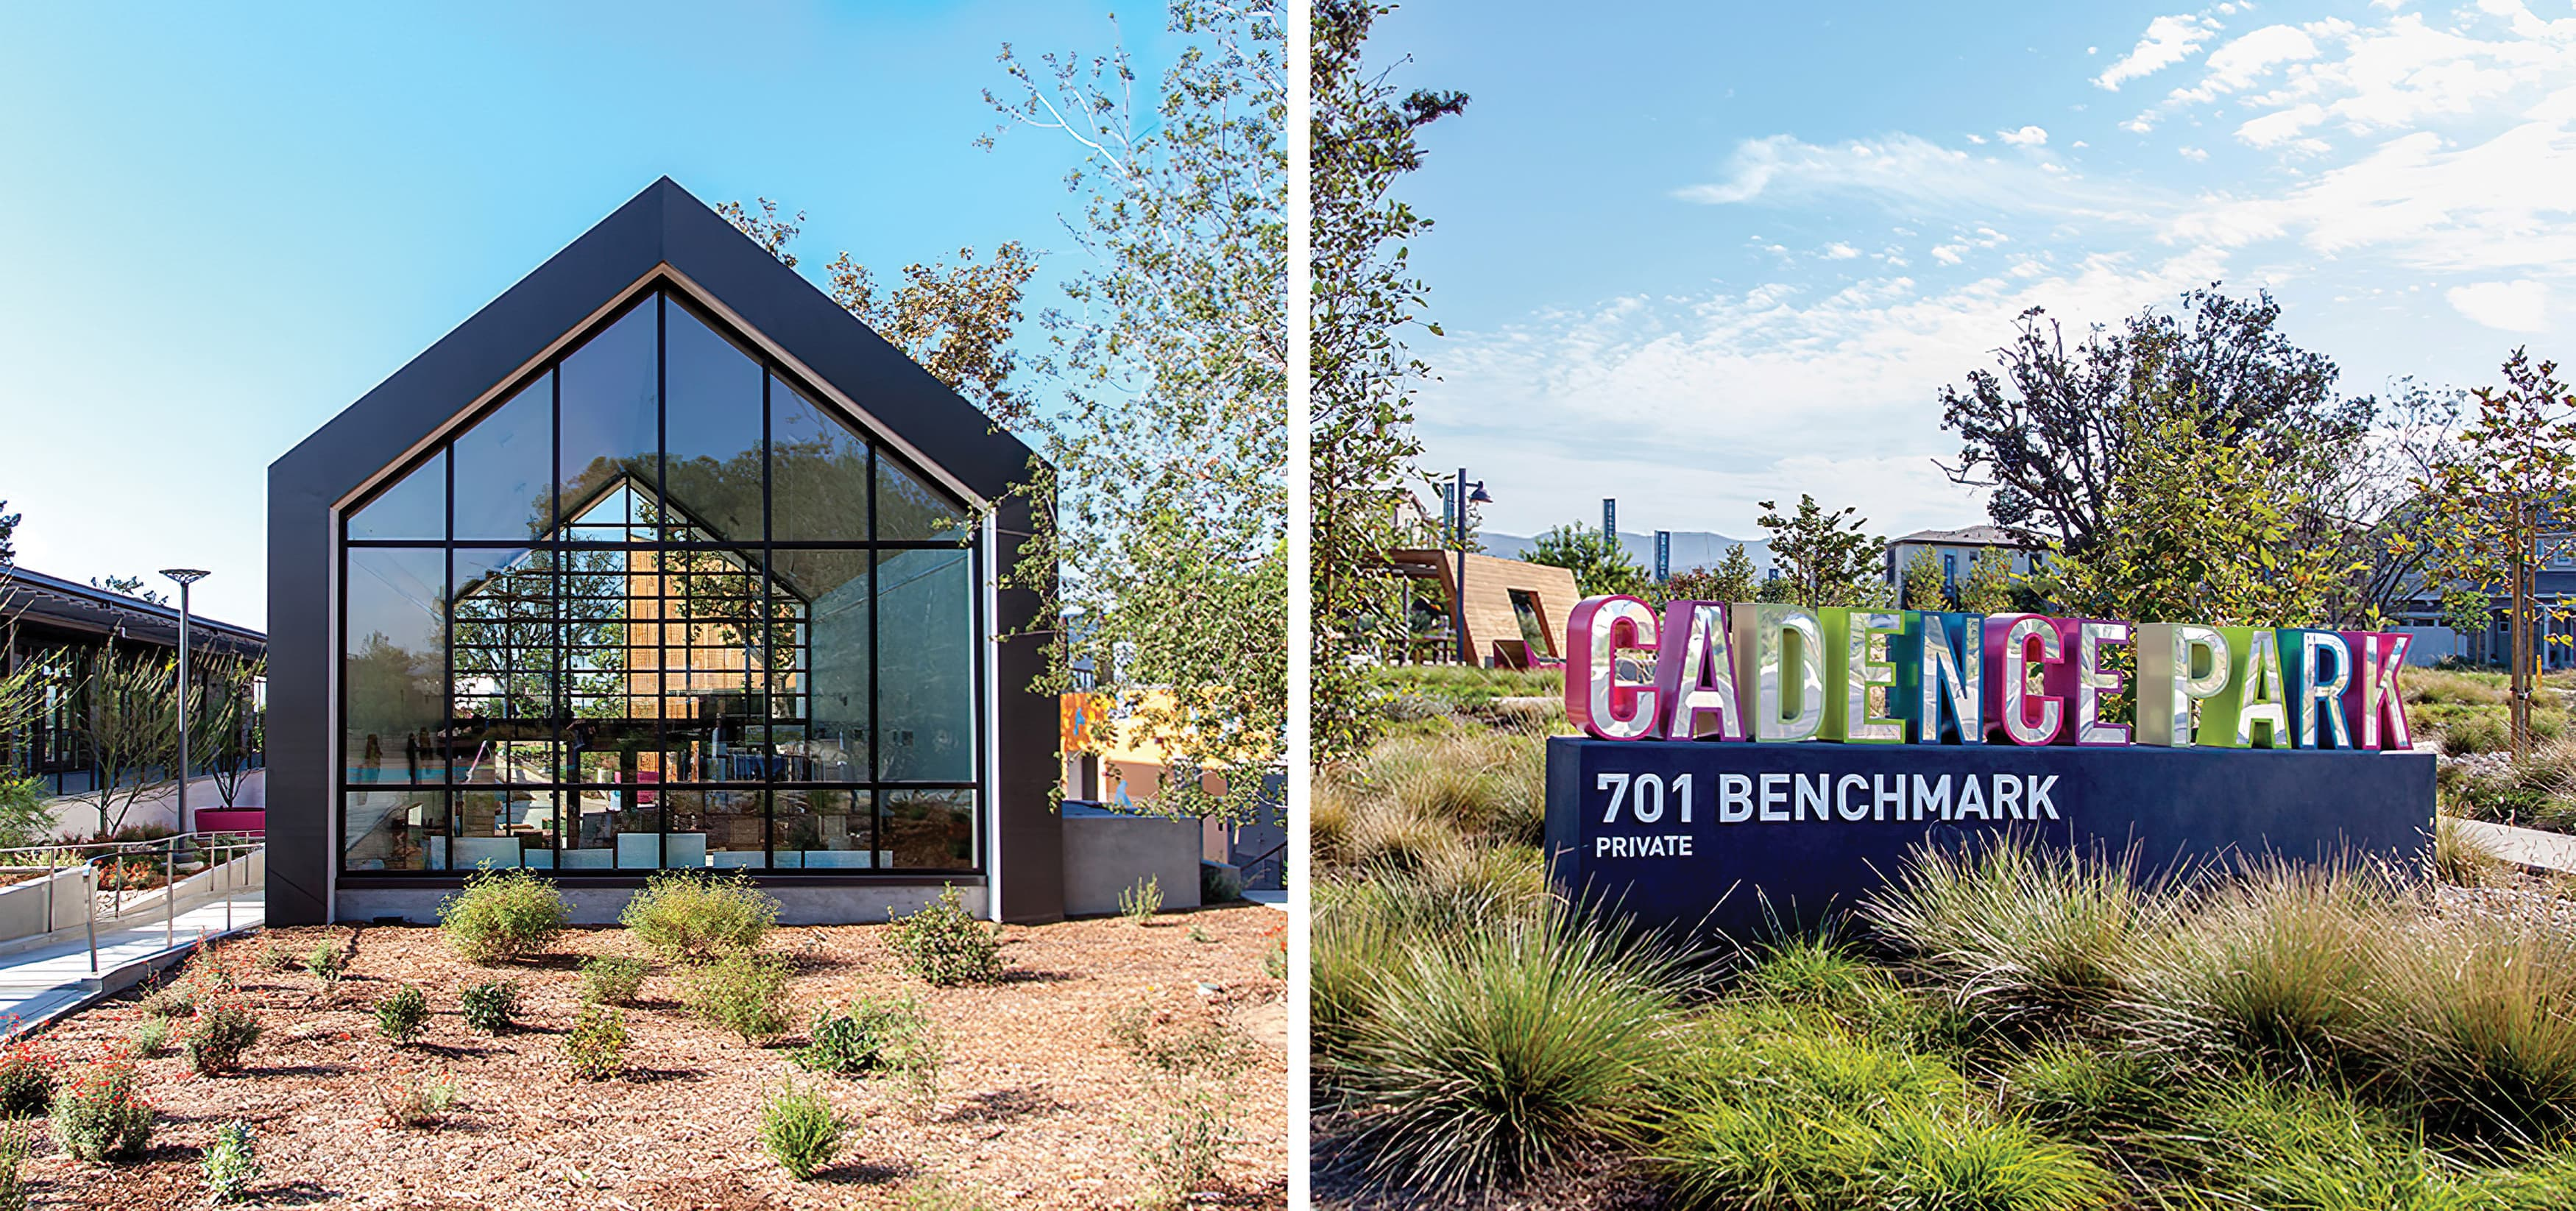 Cadence Park, a park within the Great Park Neighborhood in Irvine, California. RSM Design prepared Wayfinding Signage and Environmental Graphics. Signage Design.